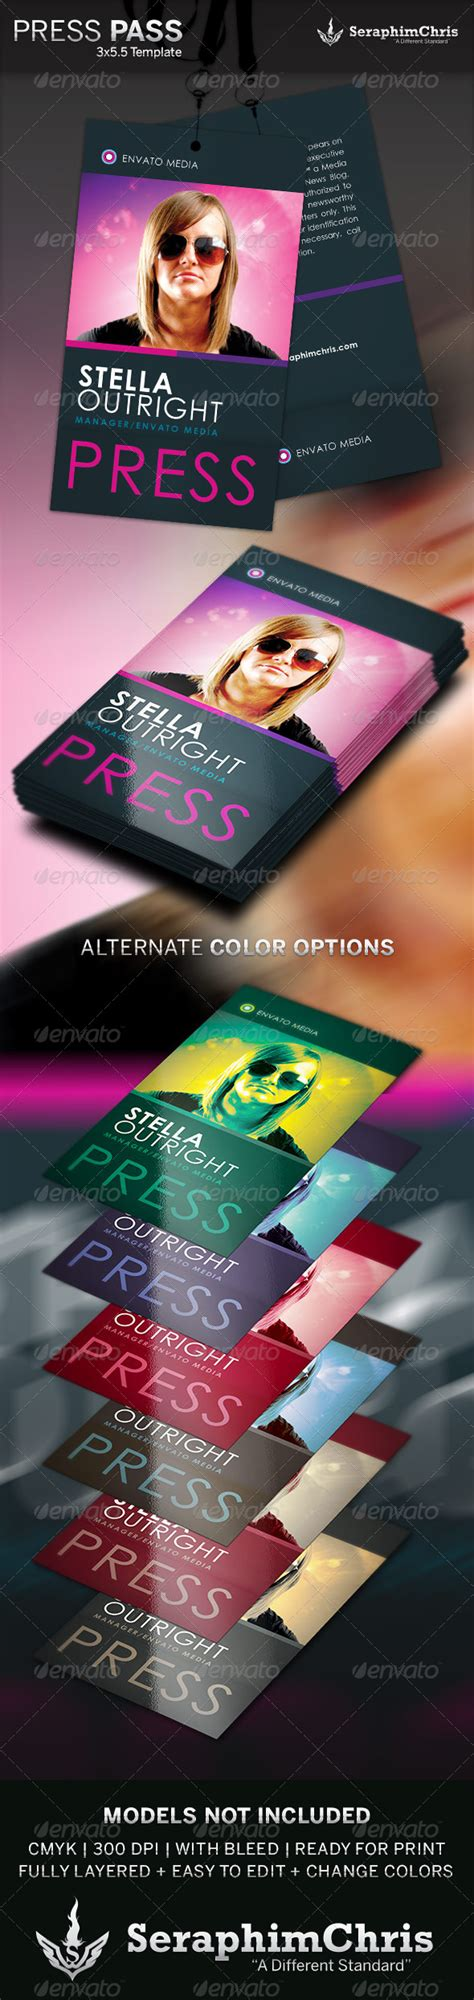 Press Pass 4 Template Graphicriver Media Pass Template Photoshop